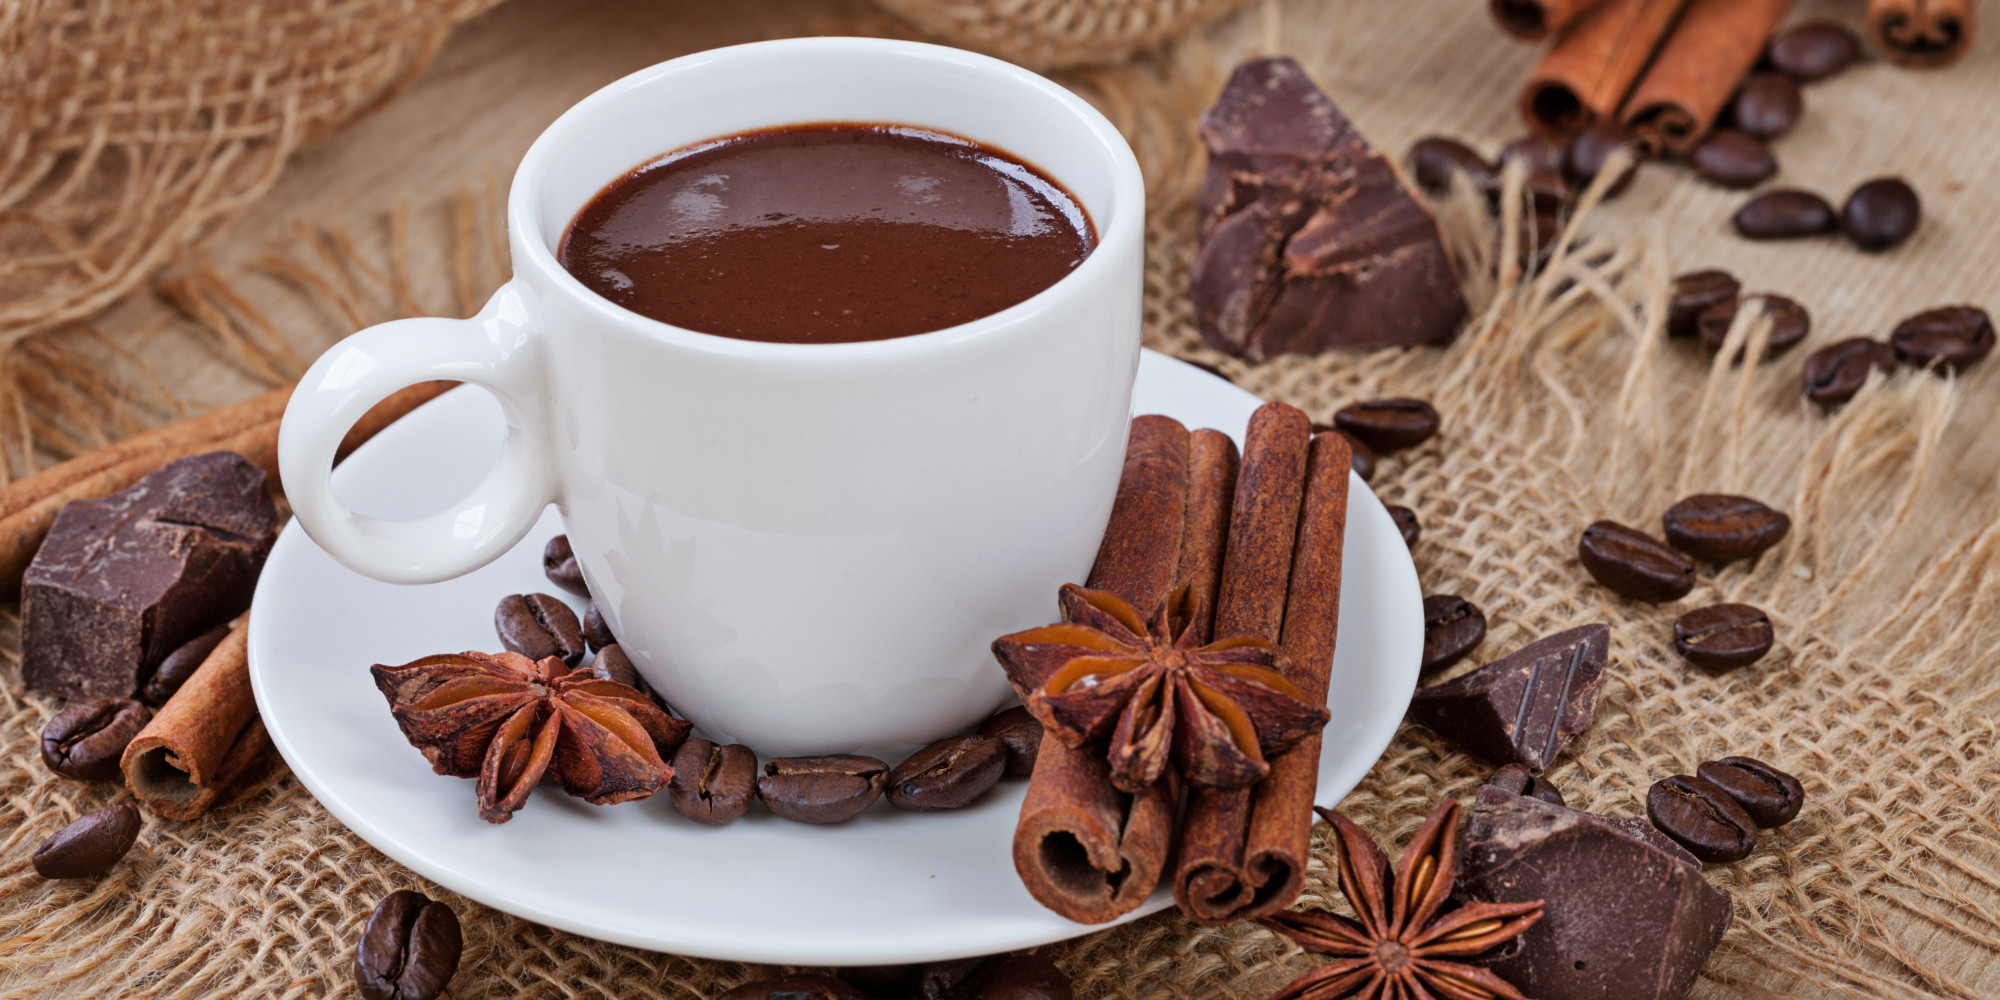 How Cocoa Powder And Coffee Can Boost Your Brain Power